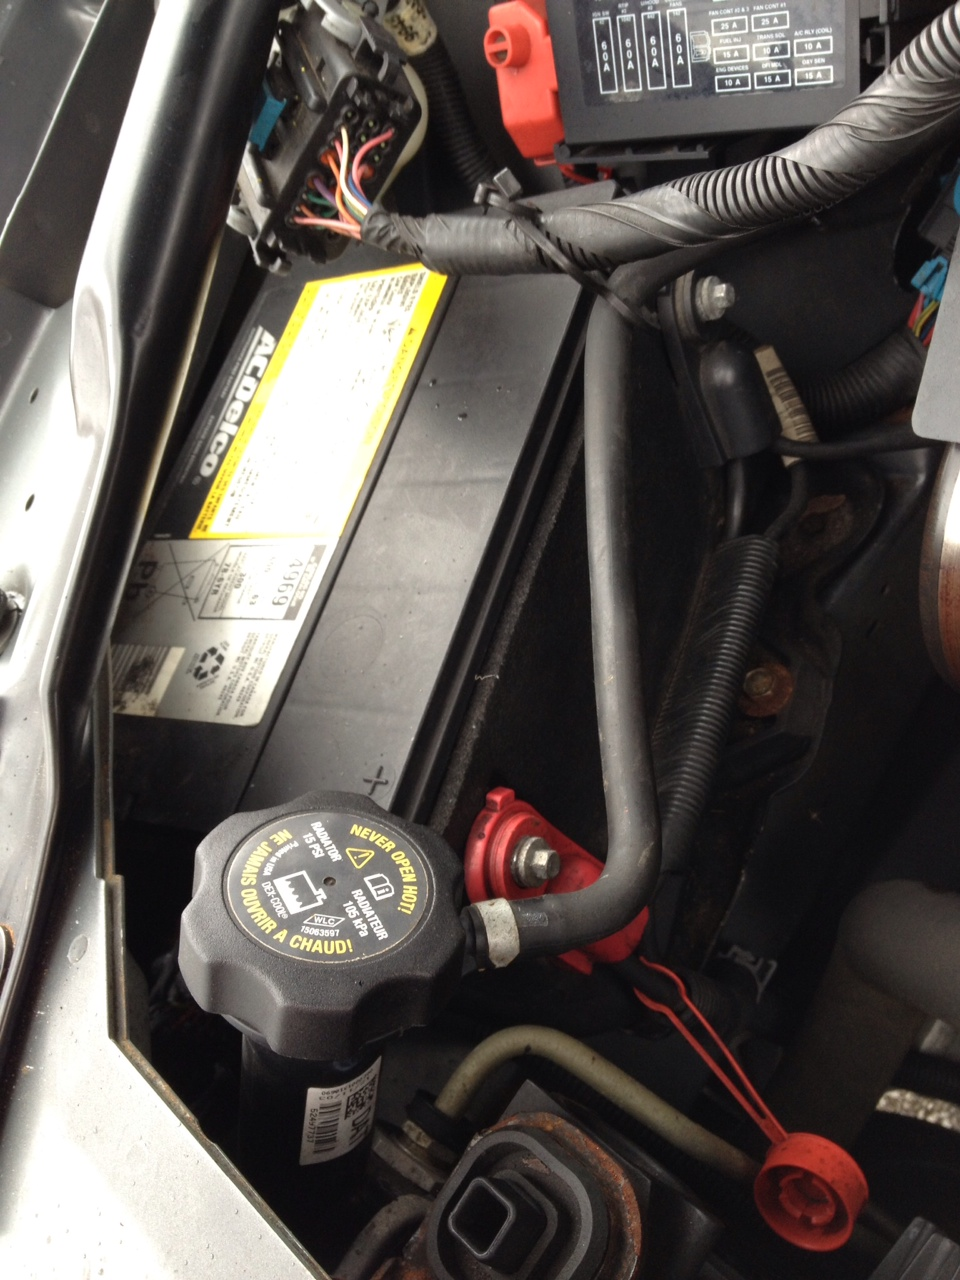 Impala 2000 chevrolet impala problems : Is it impossible to remove and replace 2004 impala battery ...